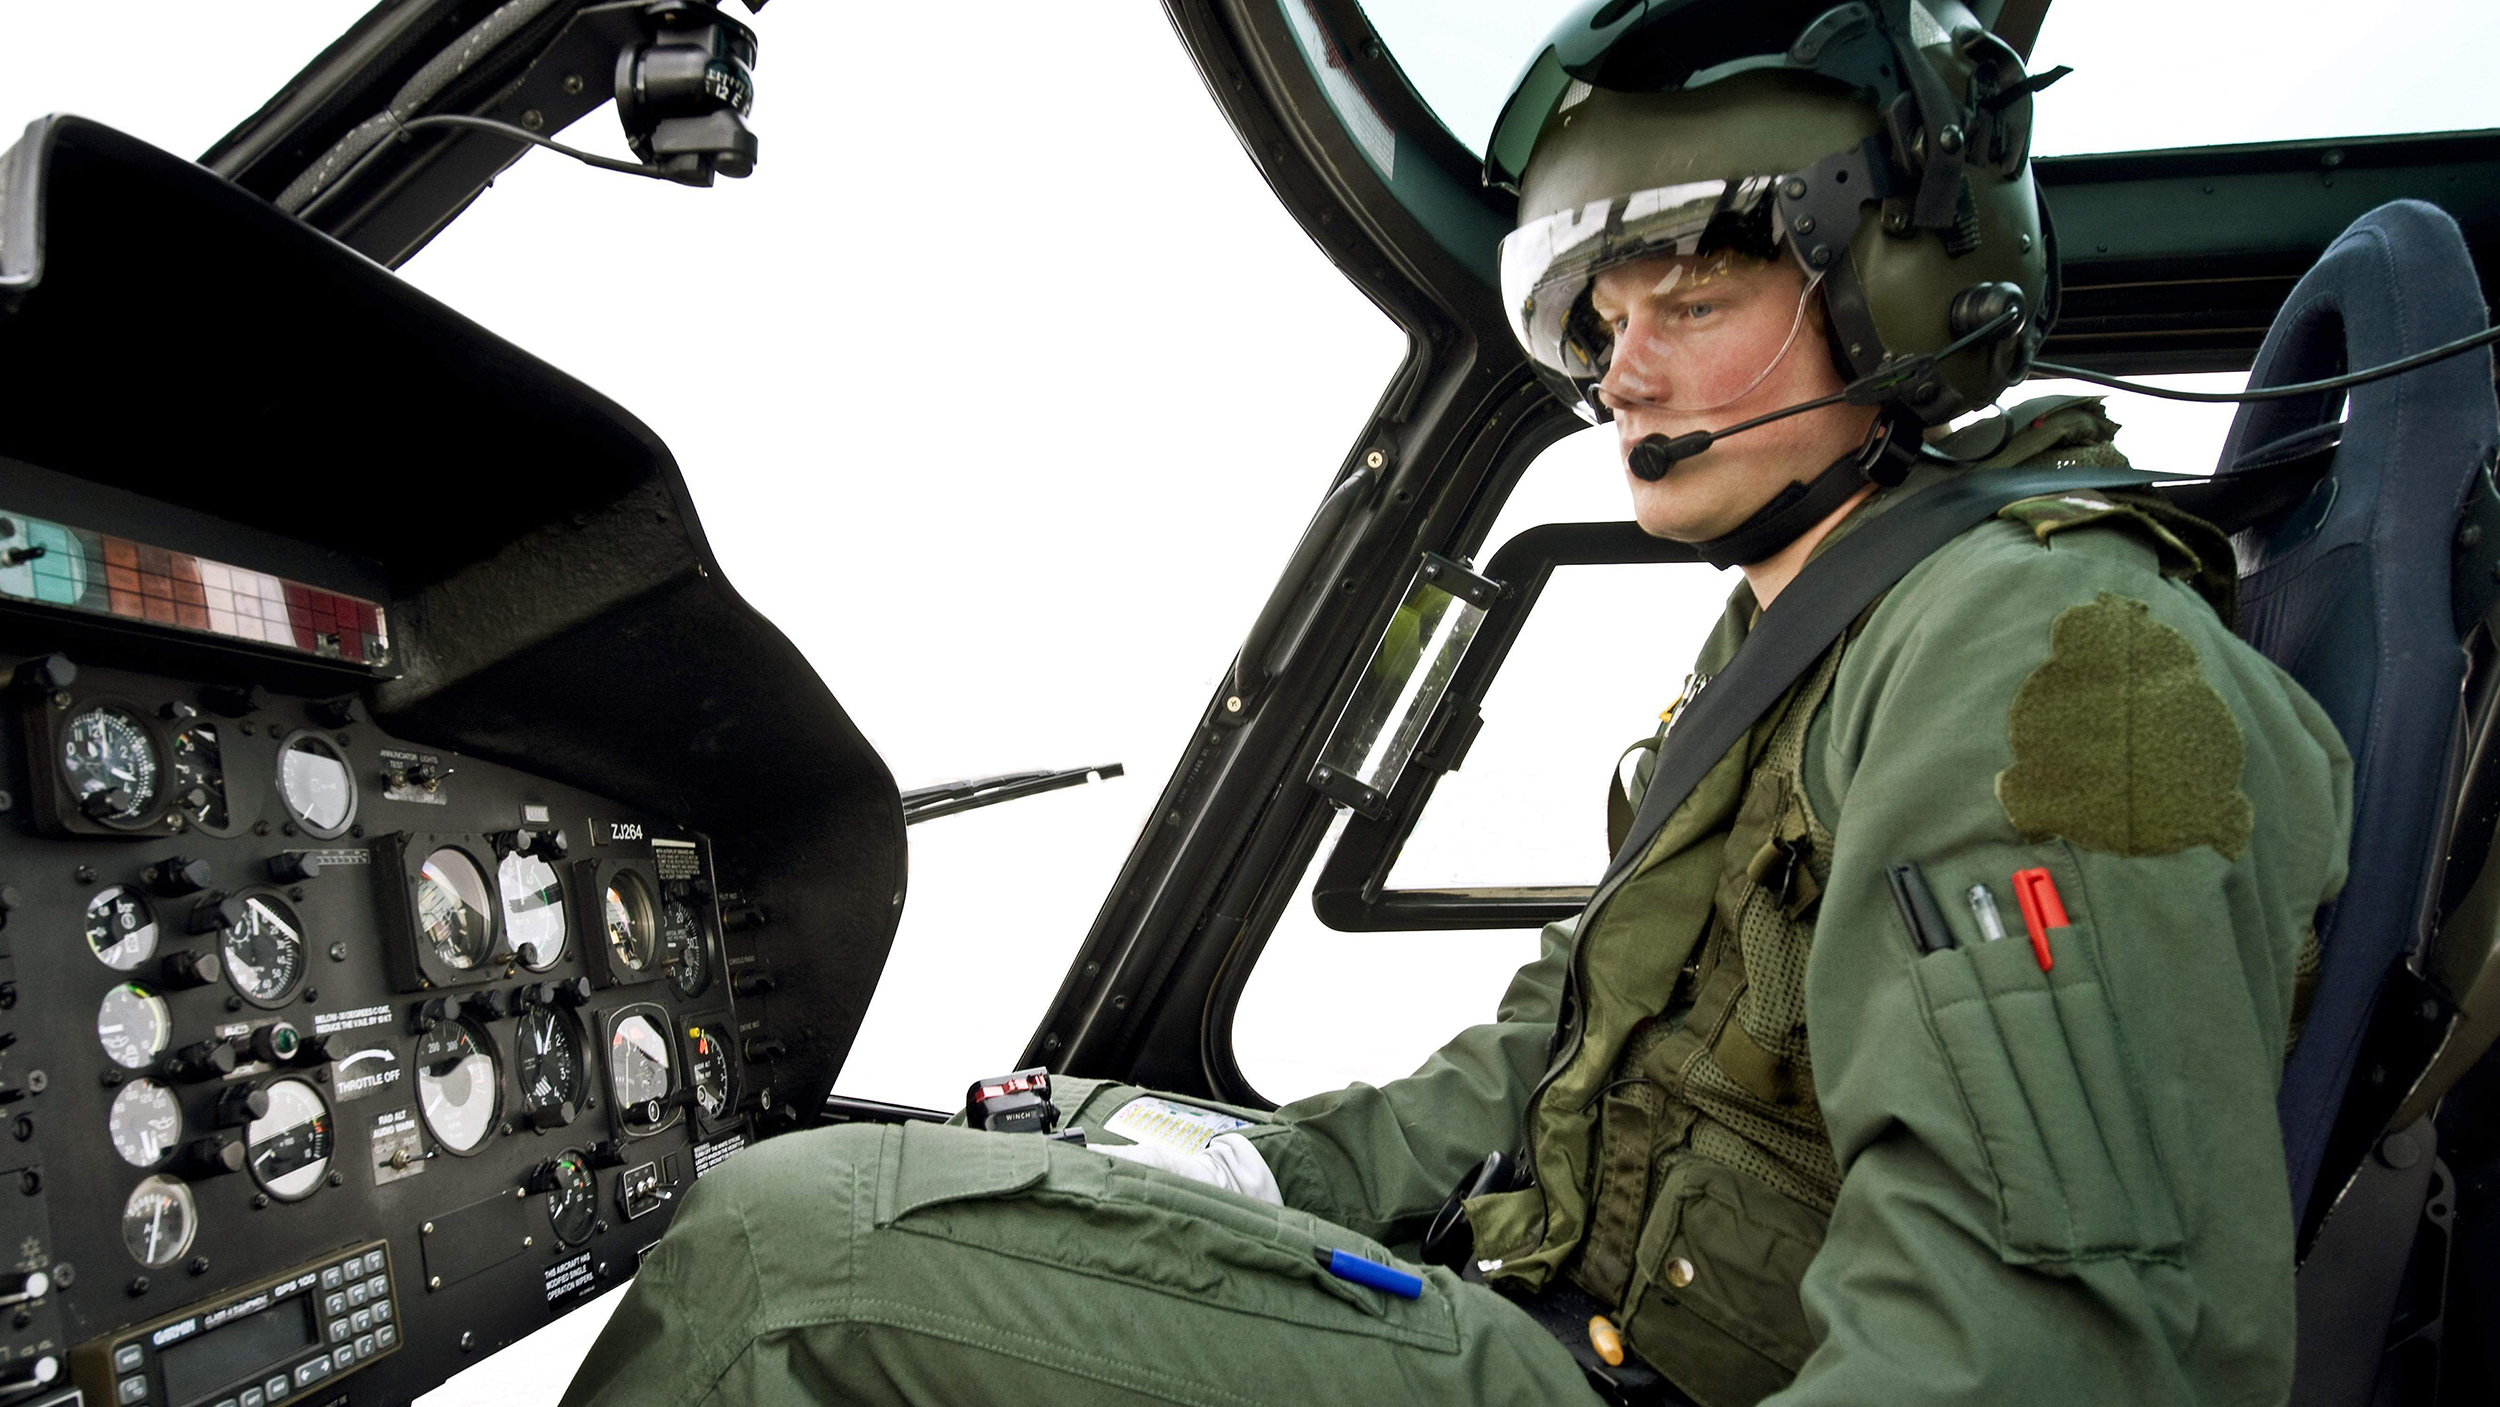 Prince Harry Quits His Job As A Military Helicopter Pilot